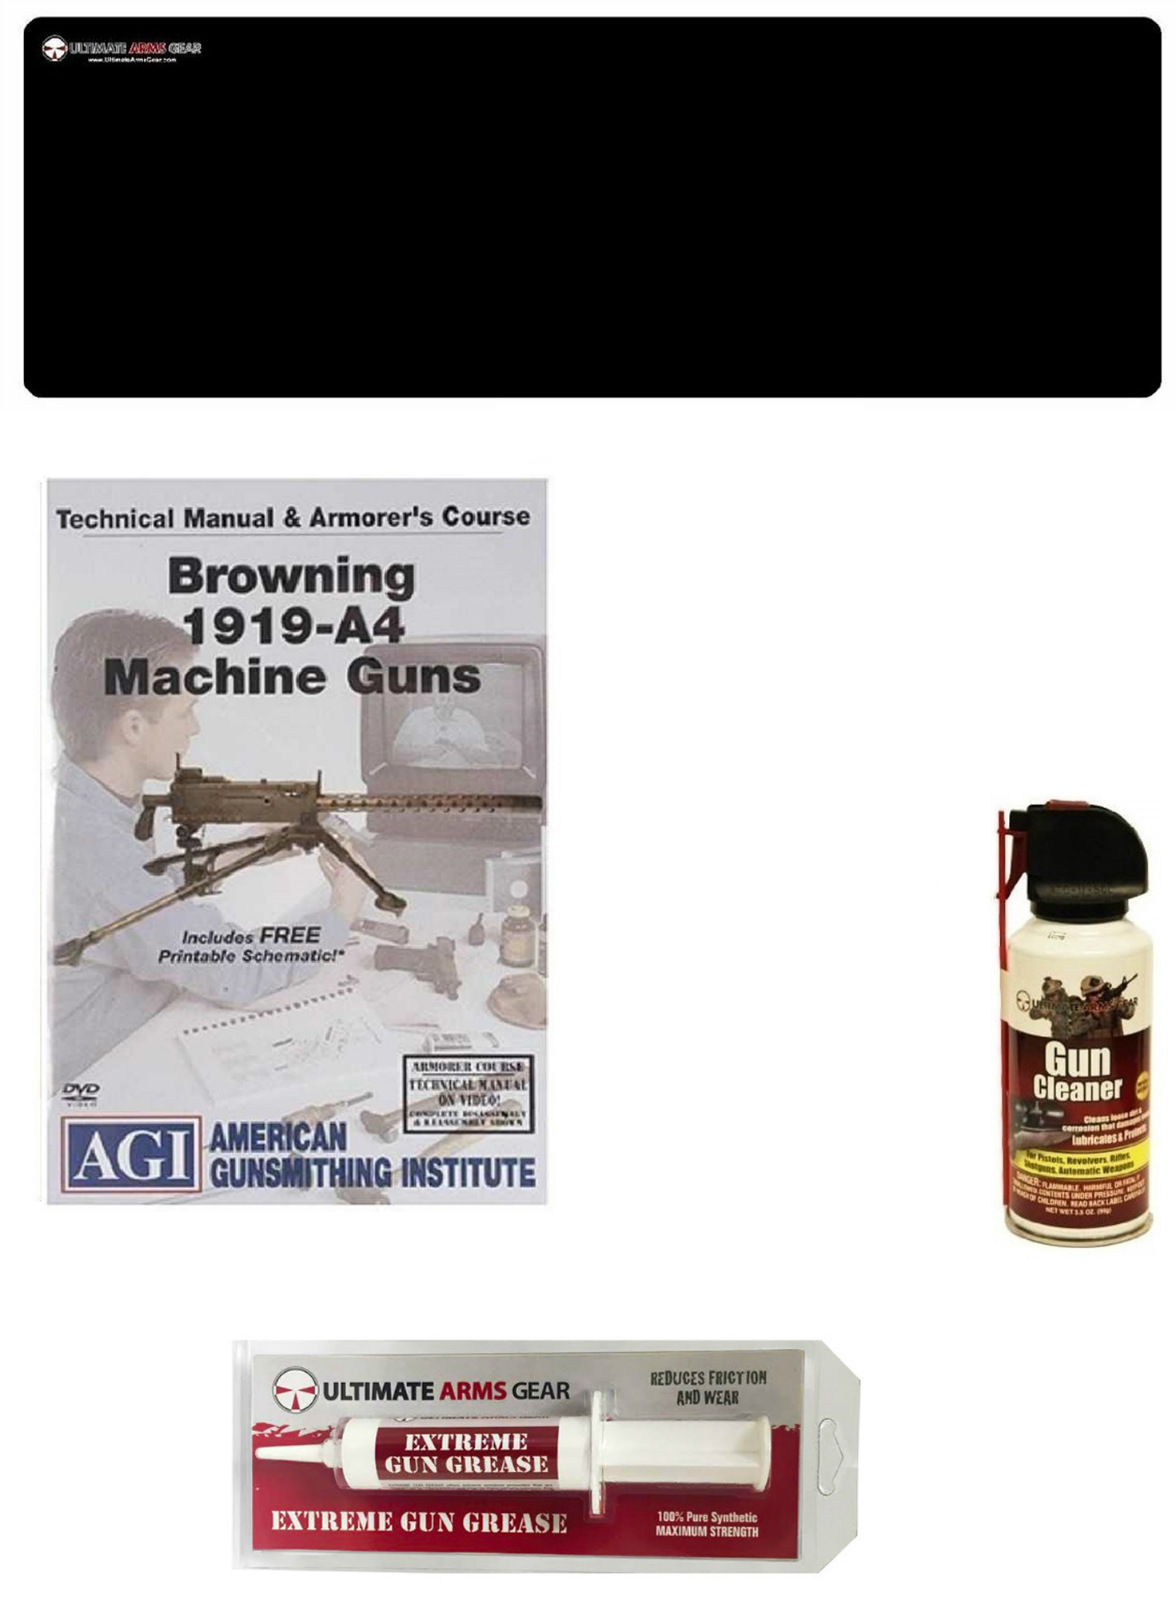 American Gunsmithing Institute DVD Manual & Armorer's Course Browning 1919-A4 Machine Gun + Ultimate Arms Gear Gunsmith... by